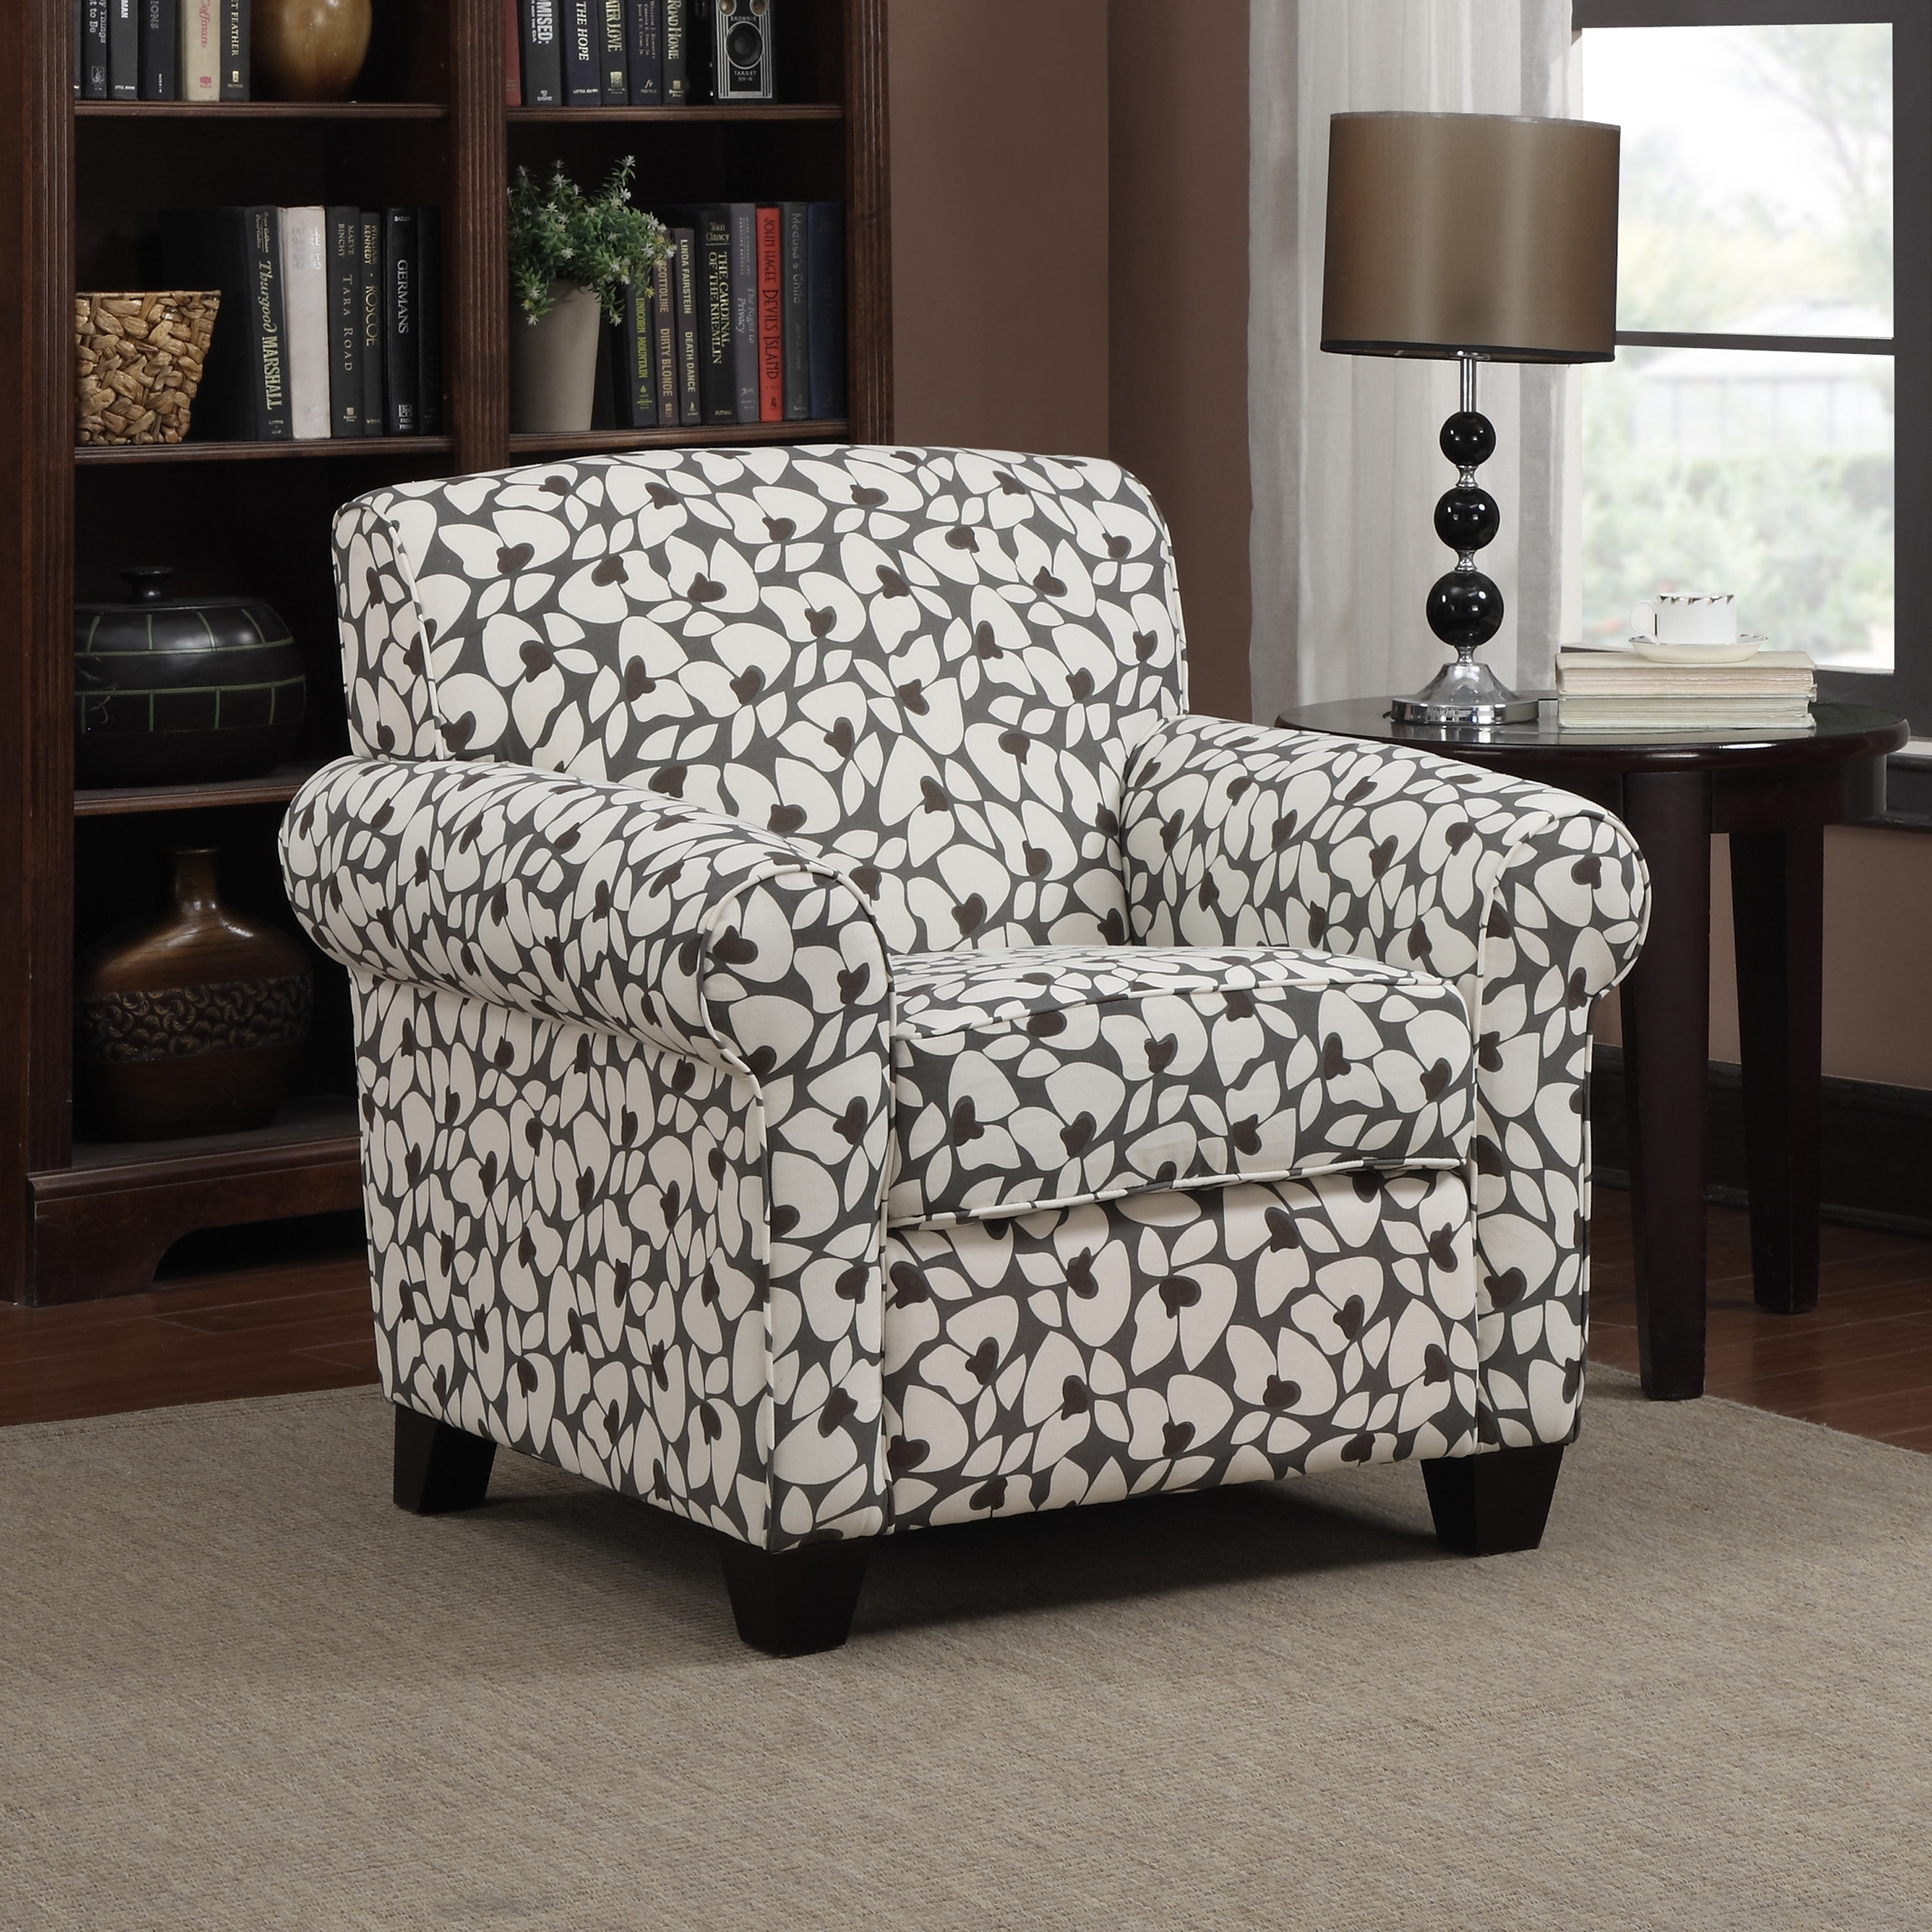 on overstock rylan best and gliding recliner shopping the avenue metal deals relax chair chairs pin greene baby swivel grey ottomans com